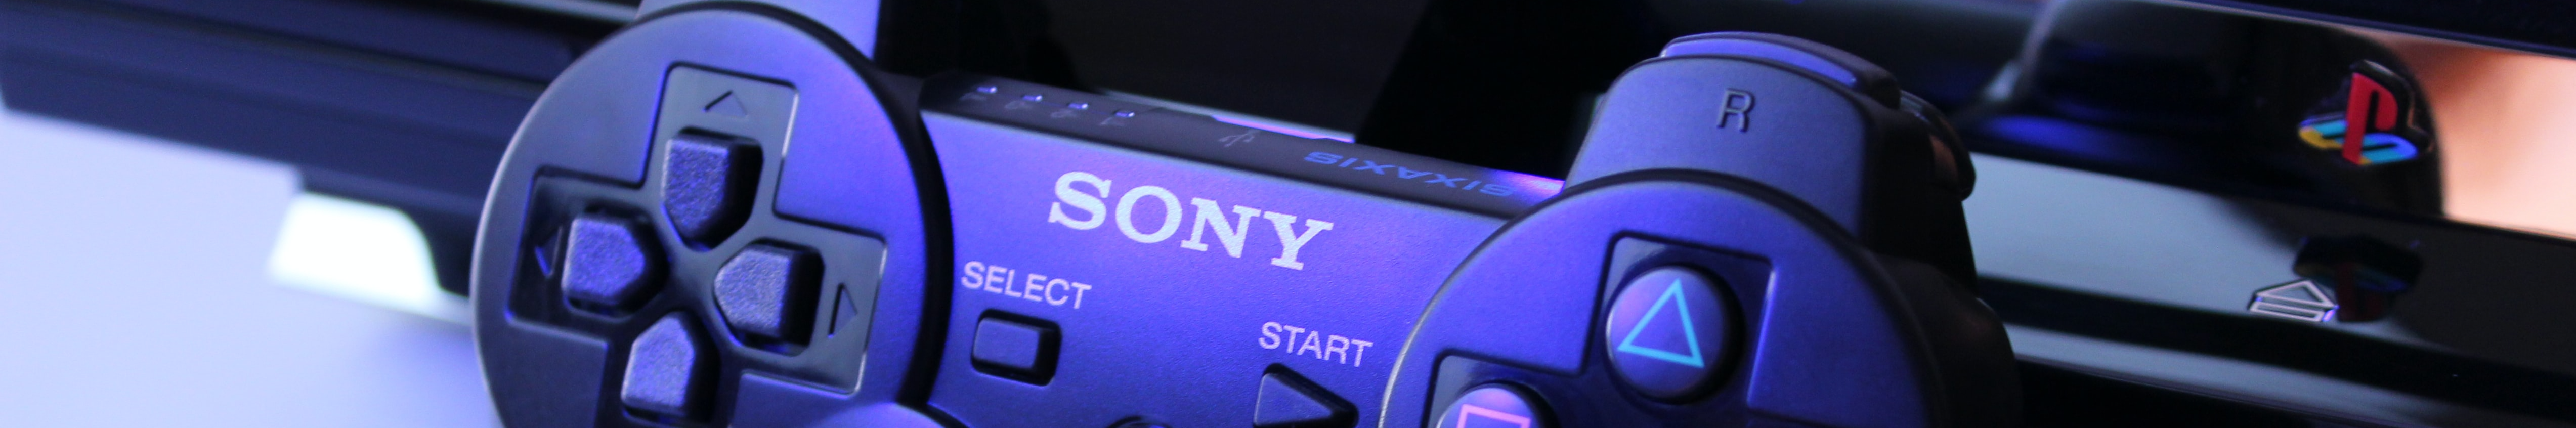 Sony fails to determine the origin of 3TGs sourced from the SORs in its supply chains